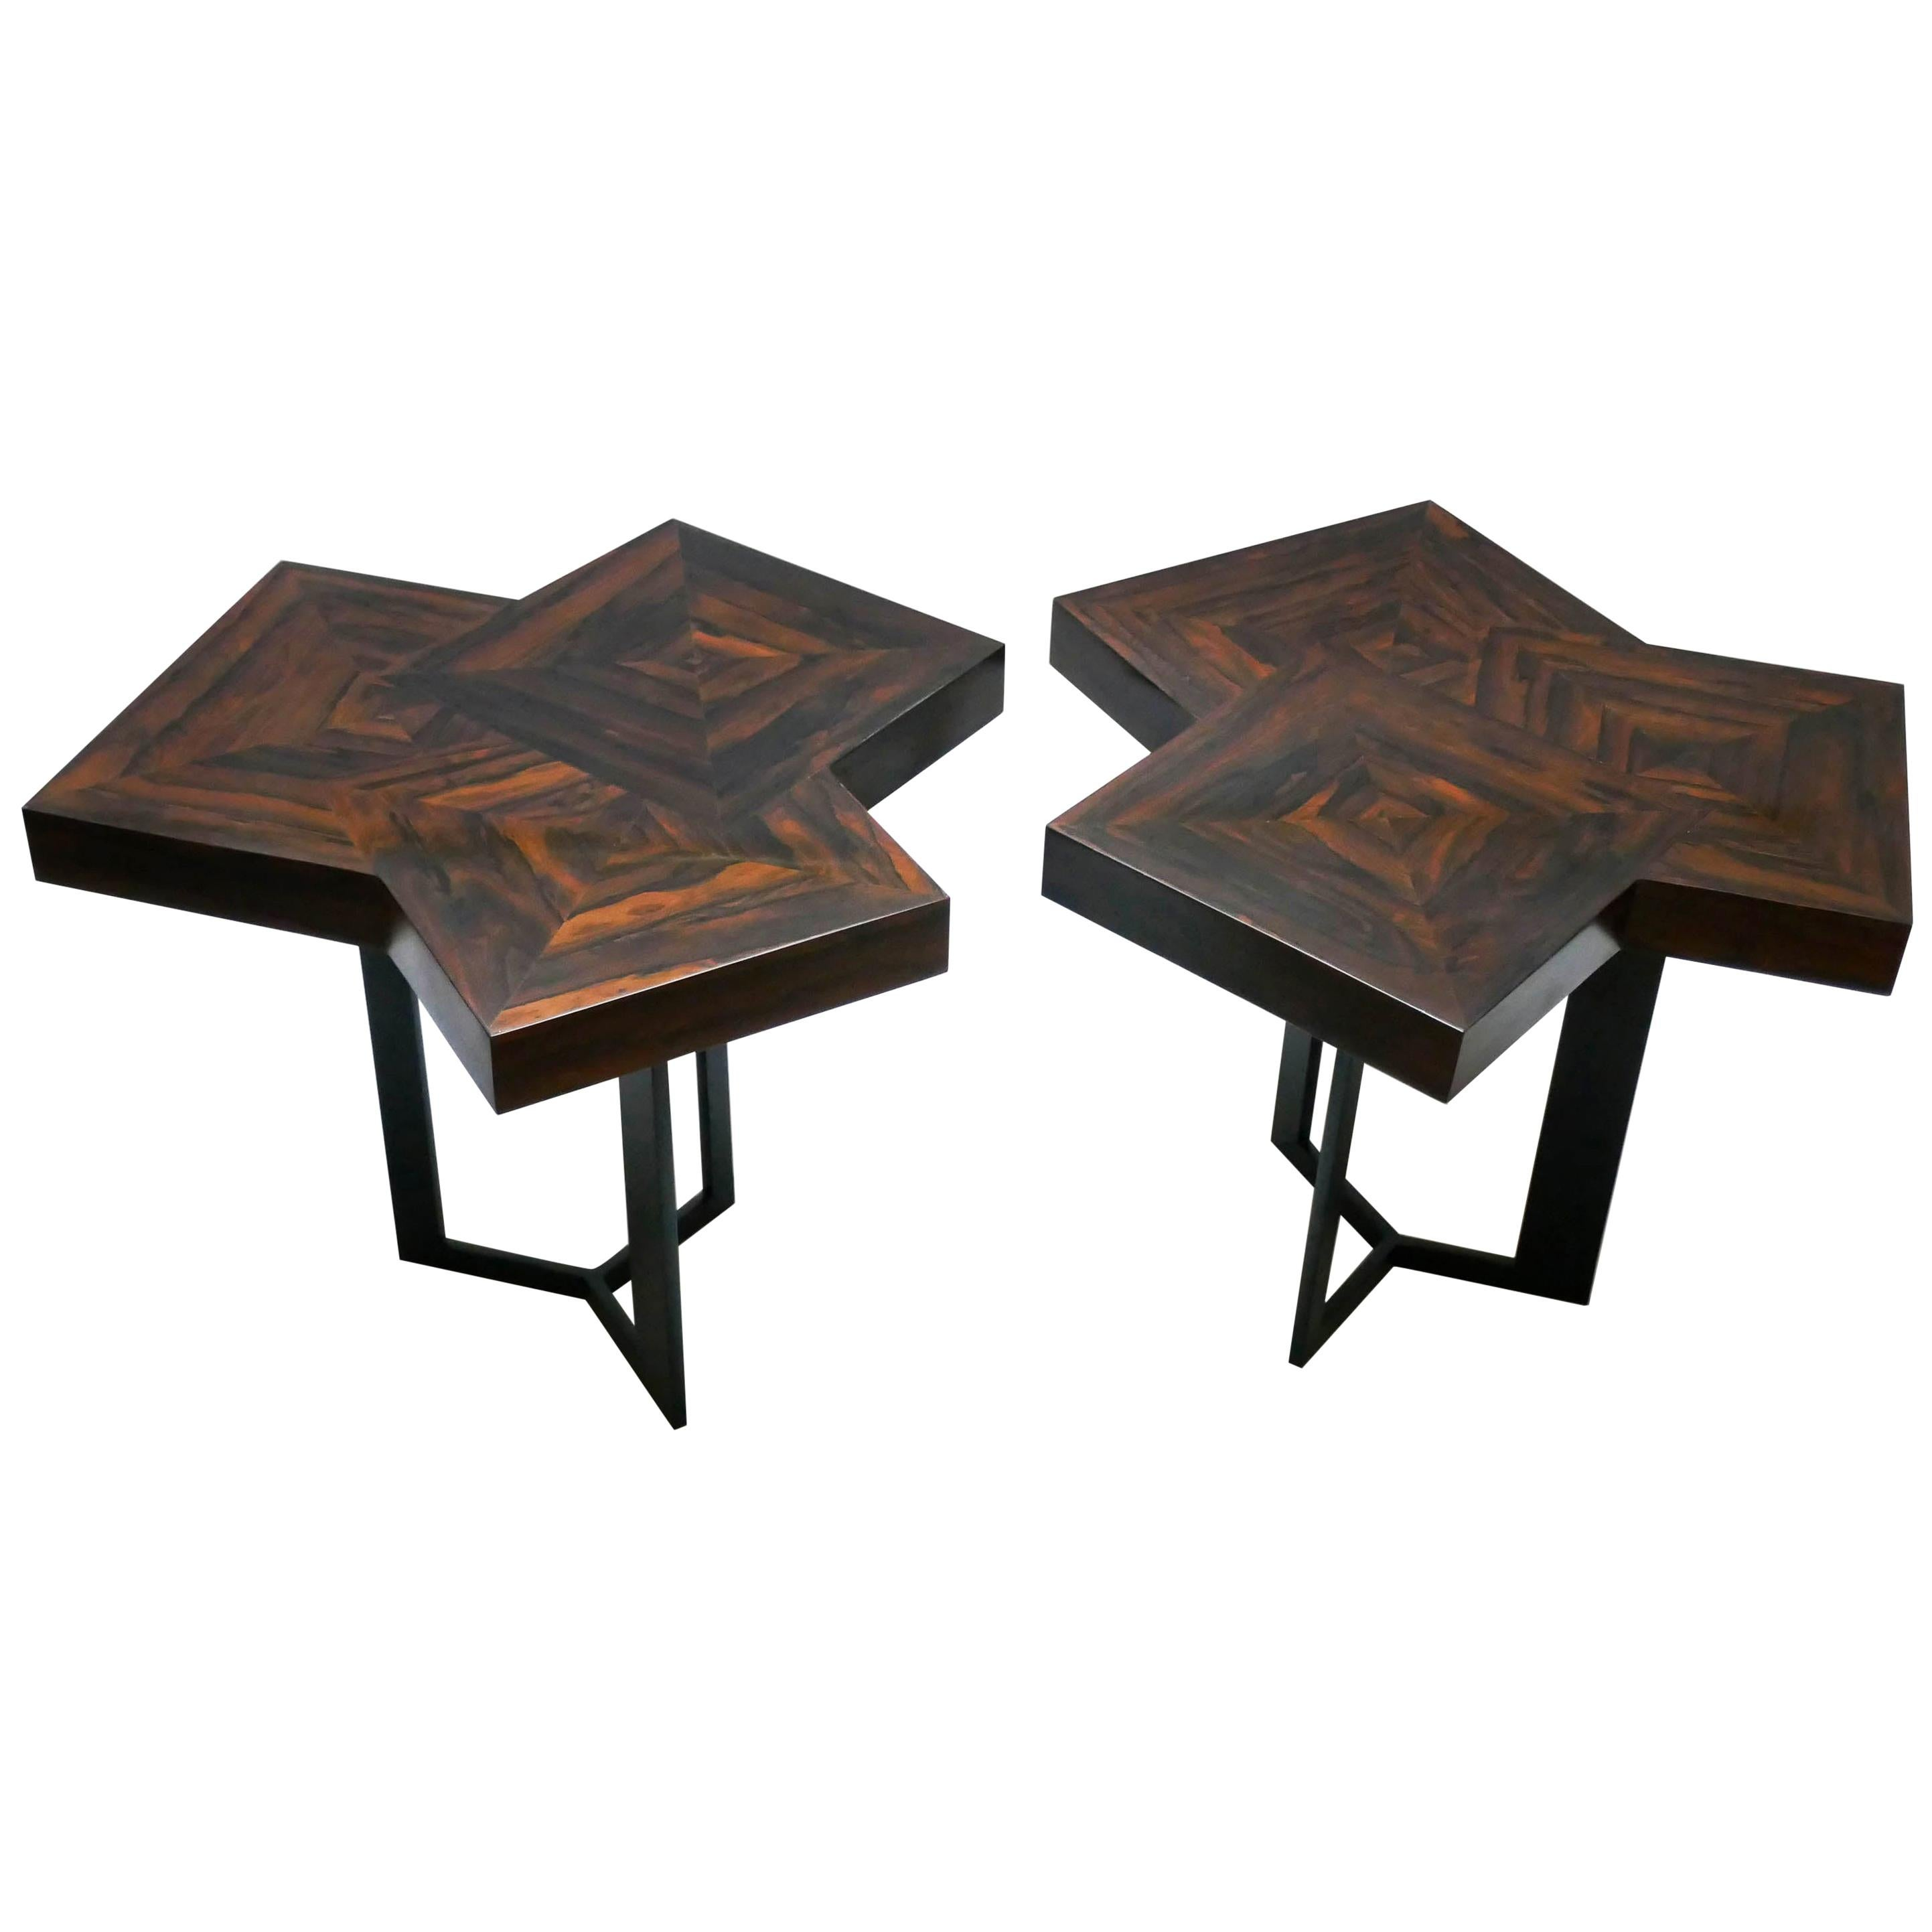 """Pair of Coffee Table """"Cubes"""" in Marquetery by Aymeric Lefort"""